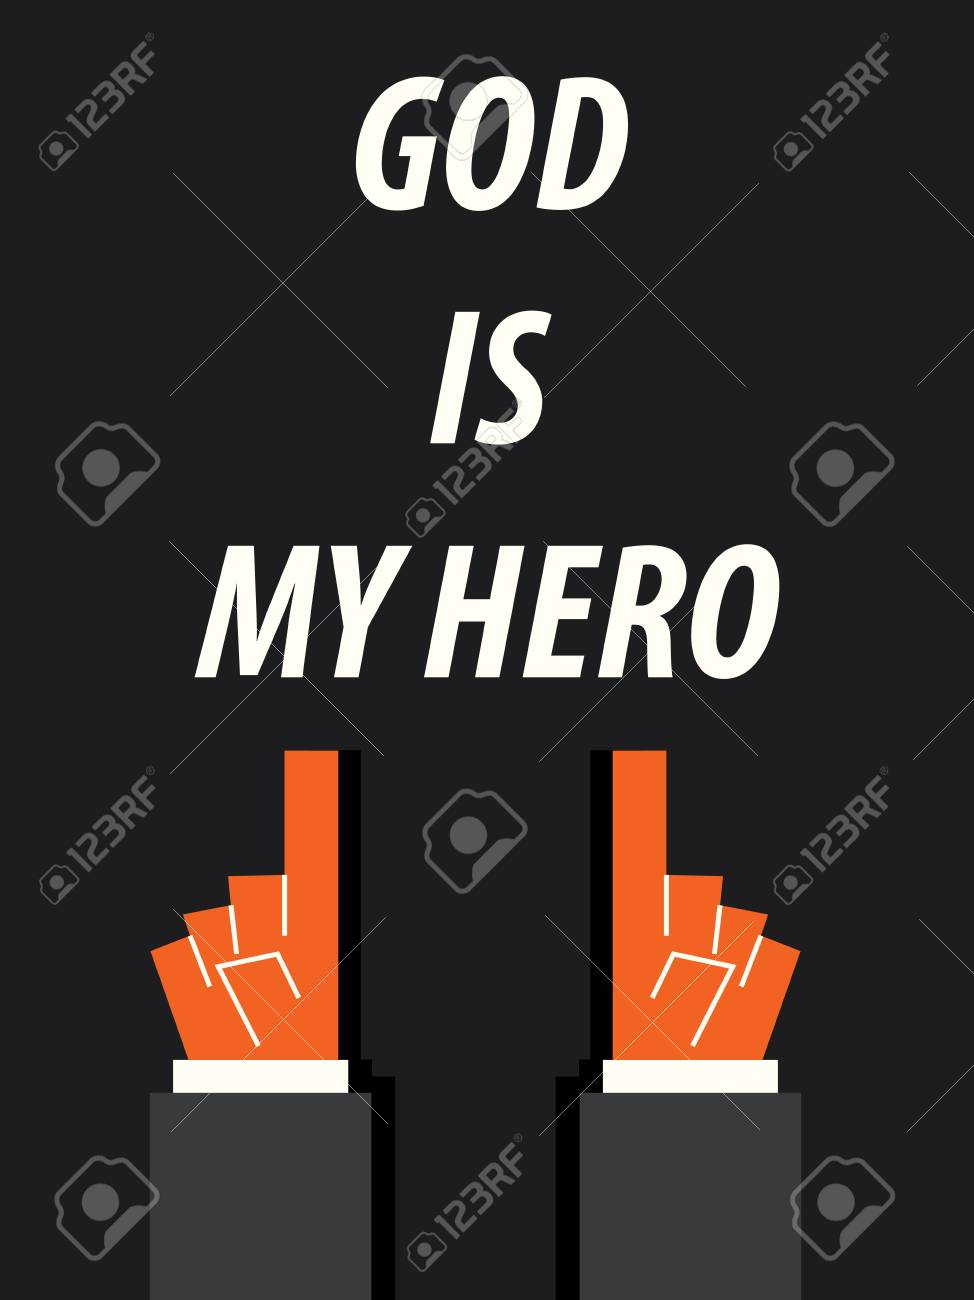 god is my hero because